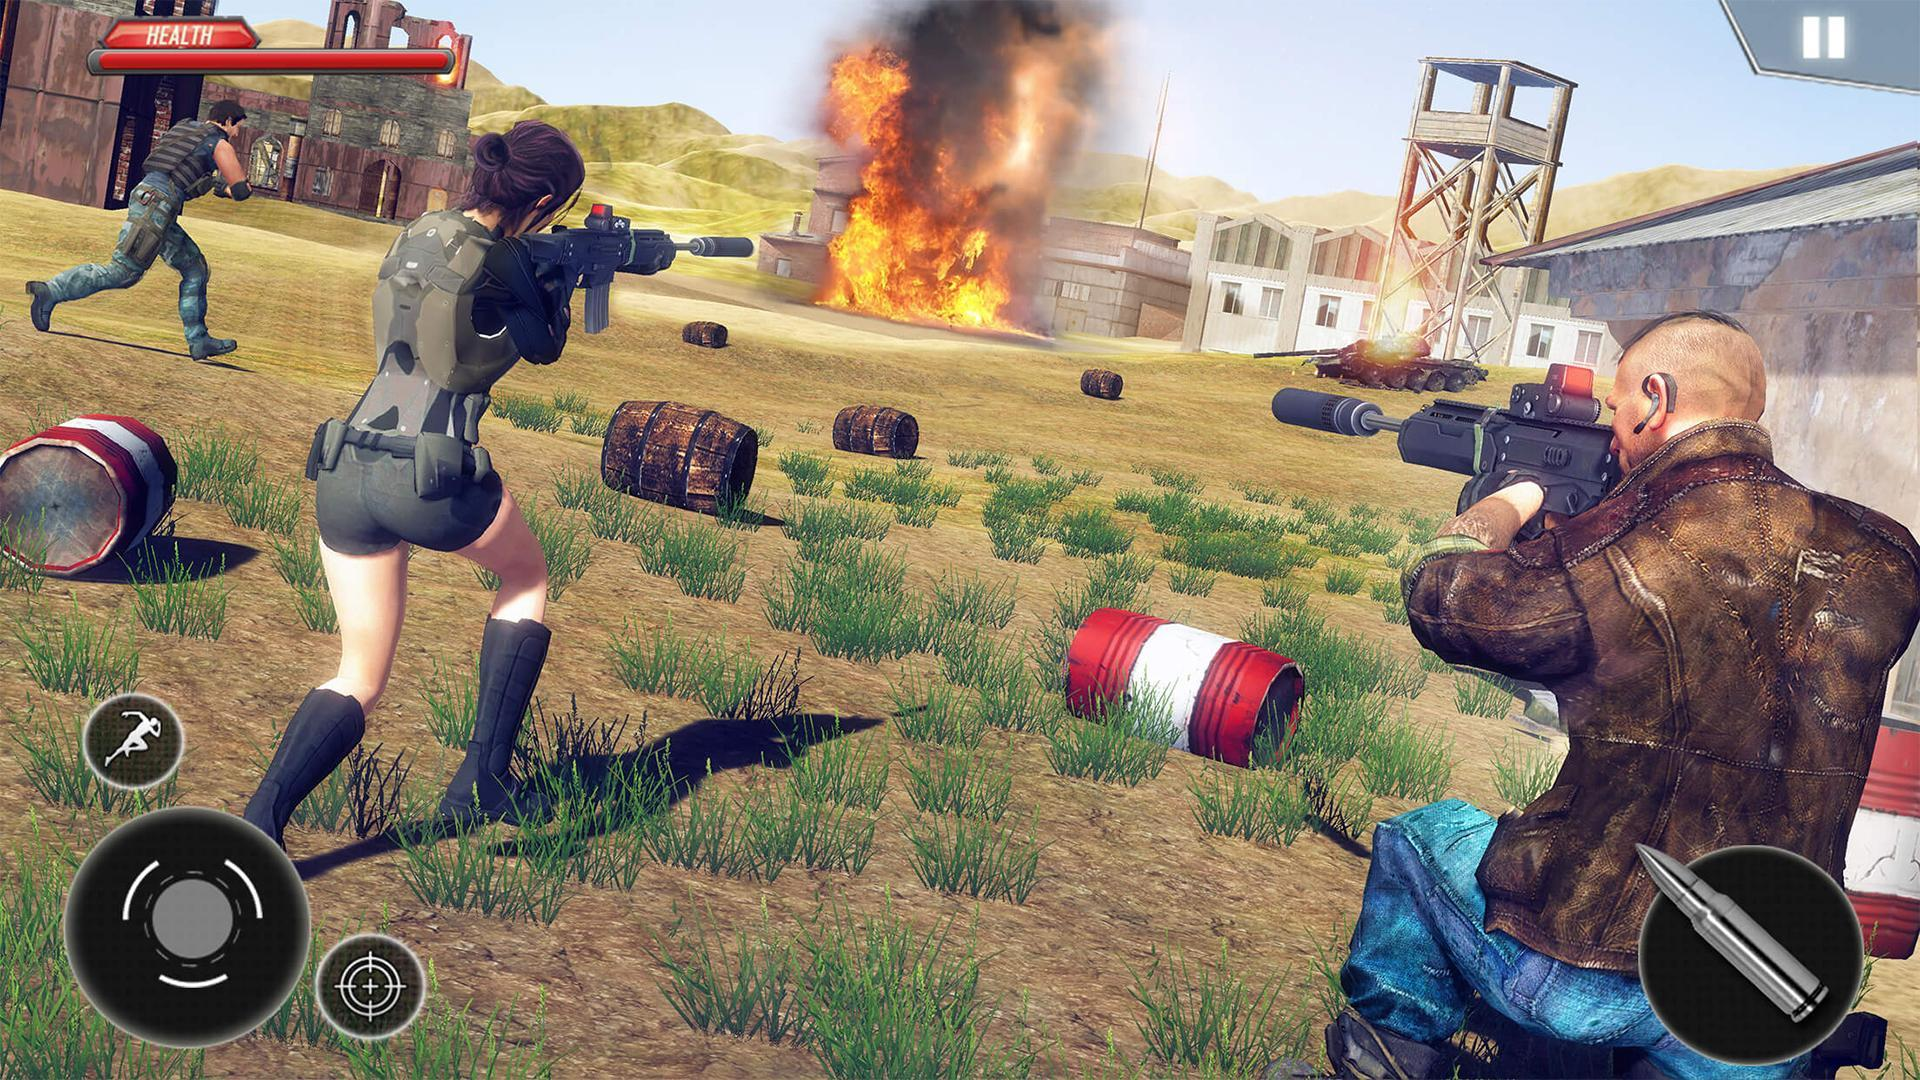 Firing Squad Fire Battleground Shooting Game for Android - APK Download